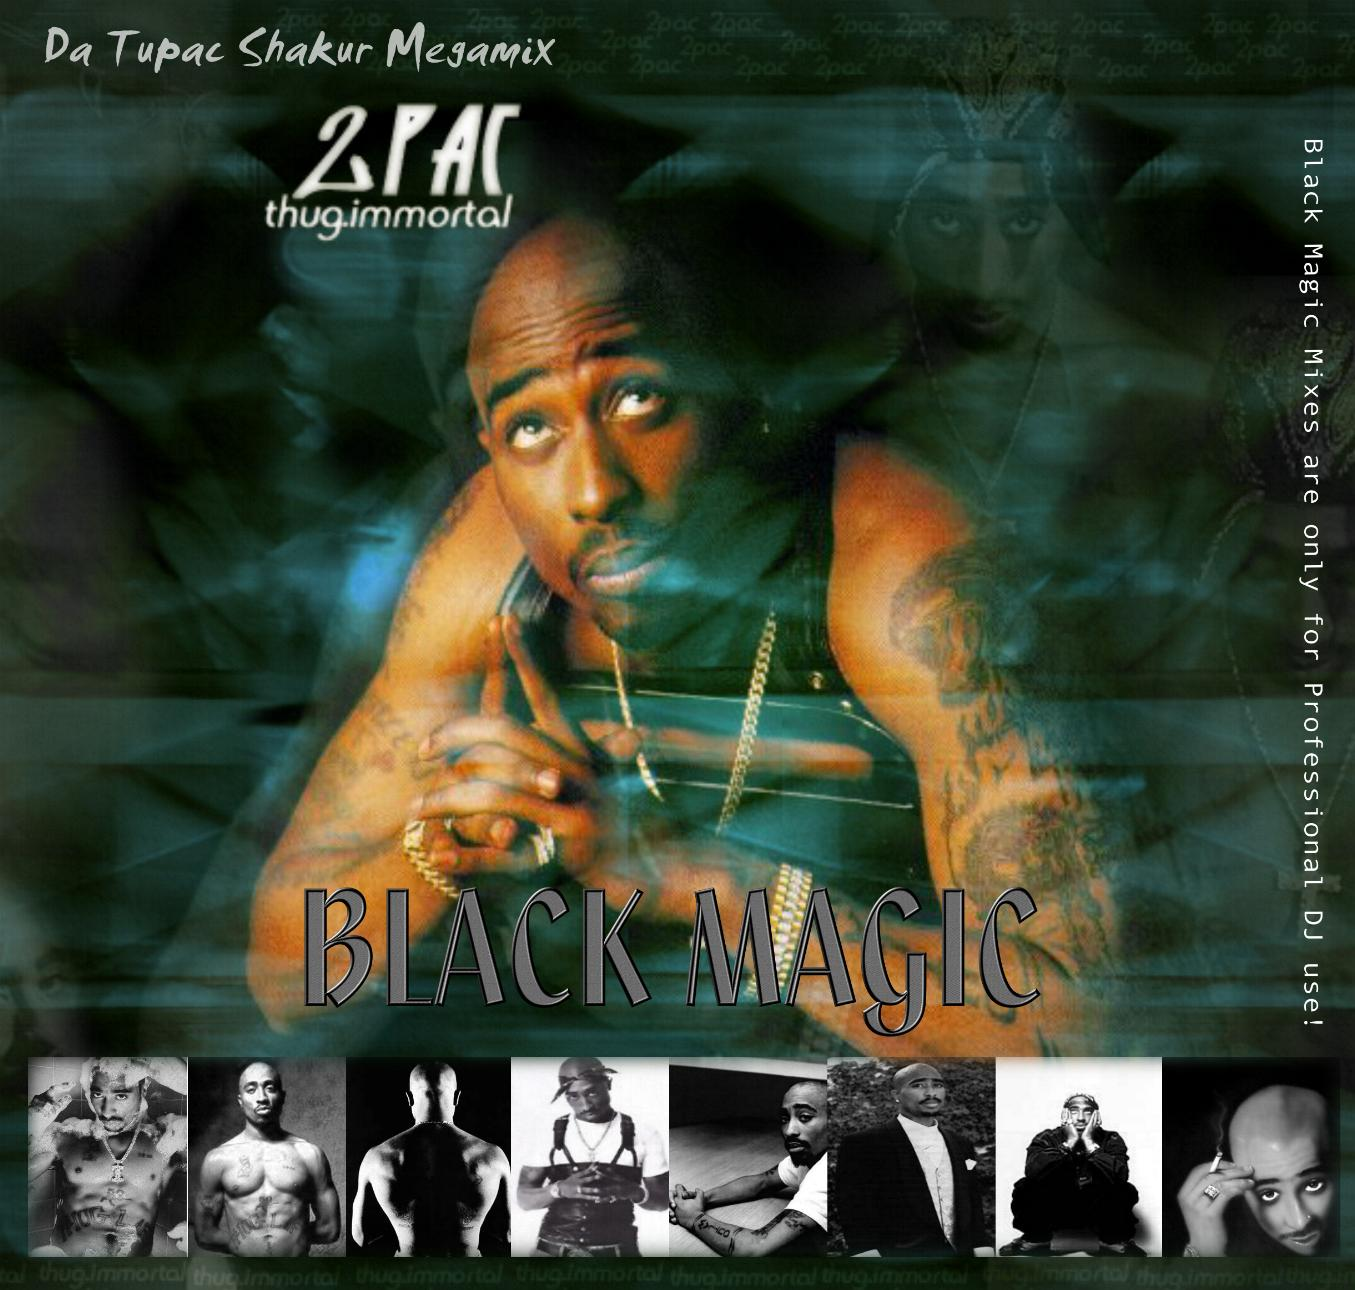 Cover Album of Black Magic - Da Tupac Shakur Megamix